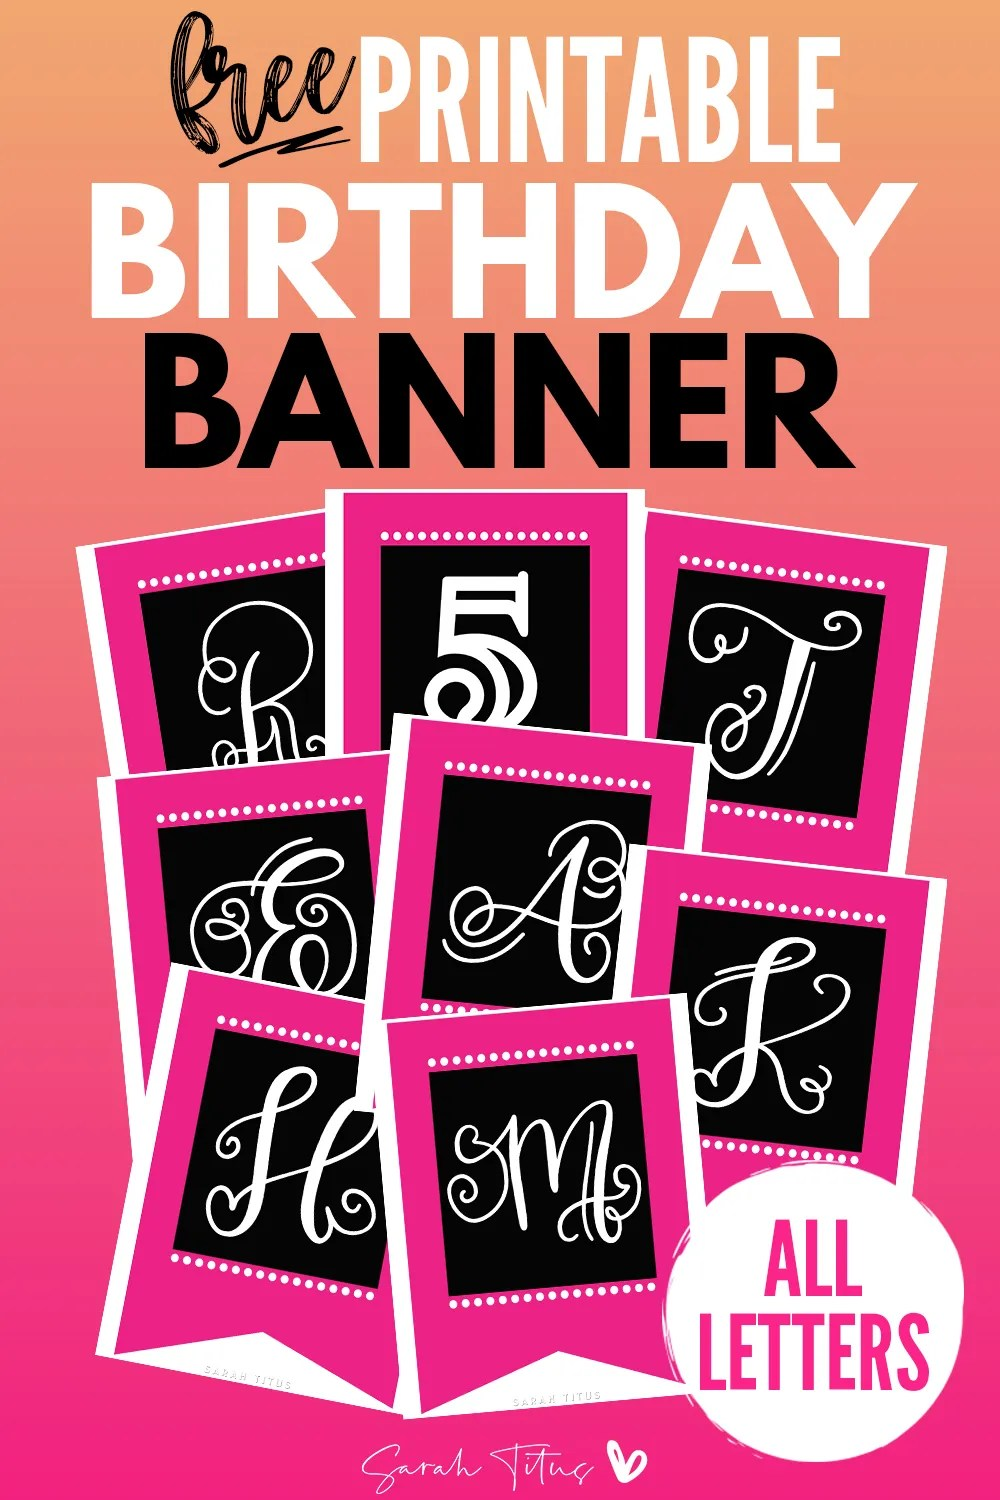 Beautiful Pink Birthday Banner Free Printable 70 Pages Sarah Titus From Homeless To 8 Figures